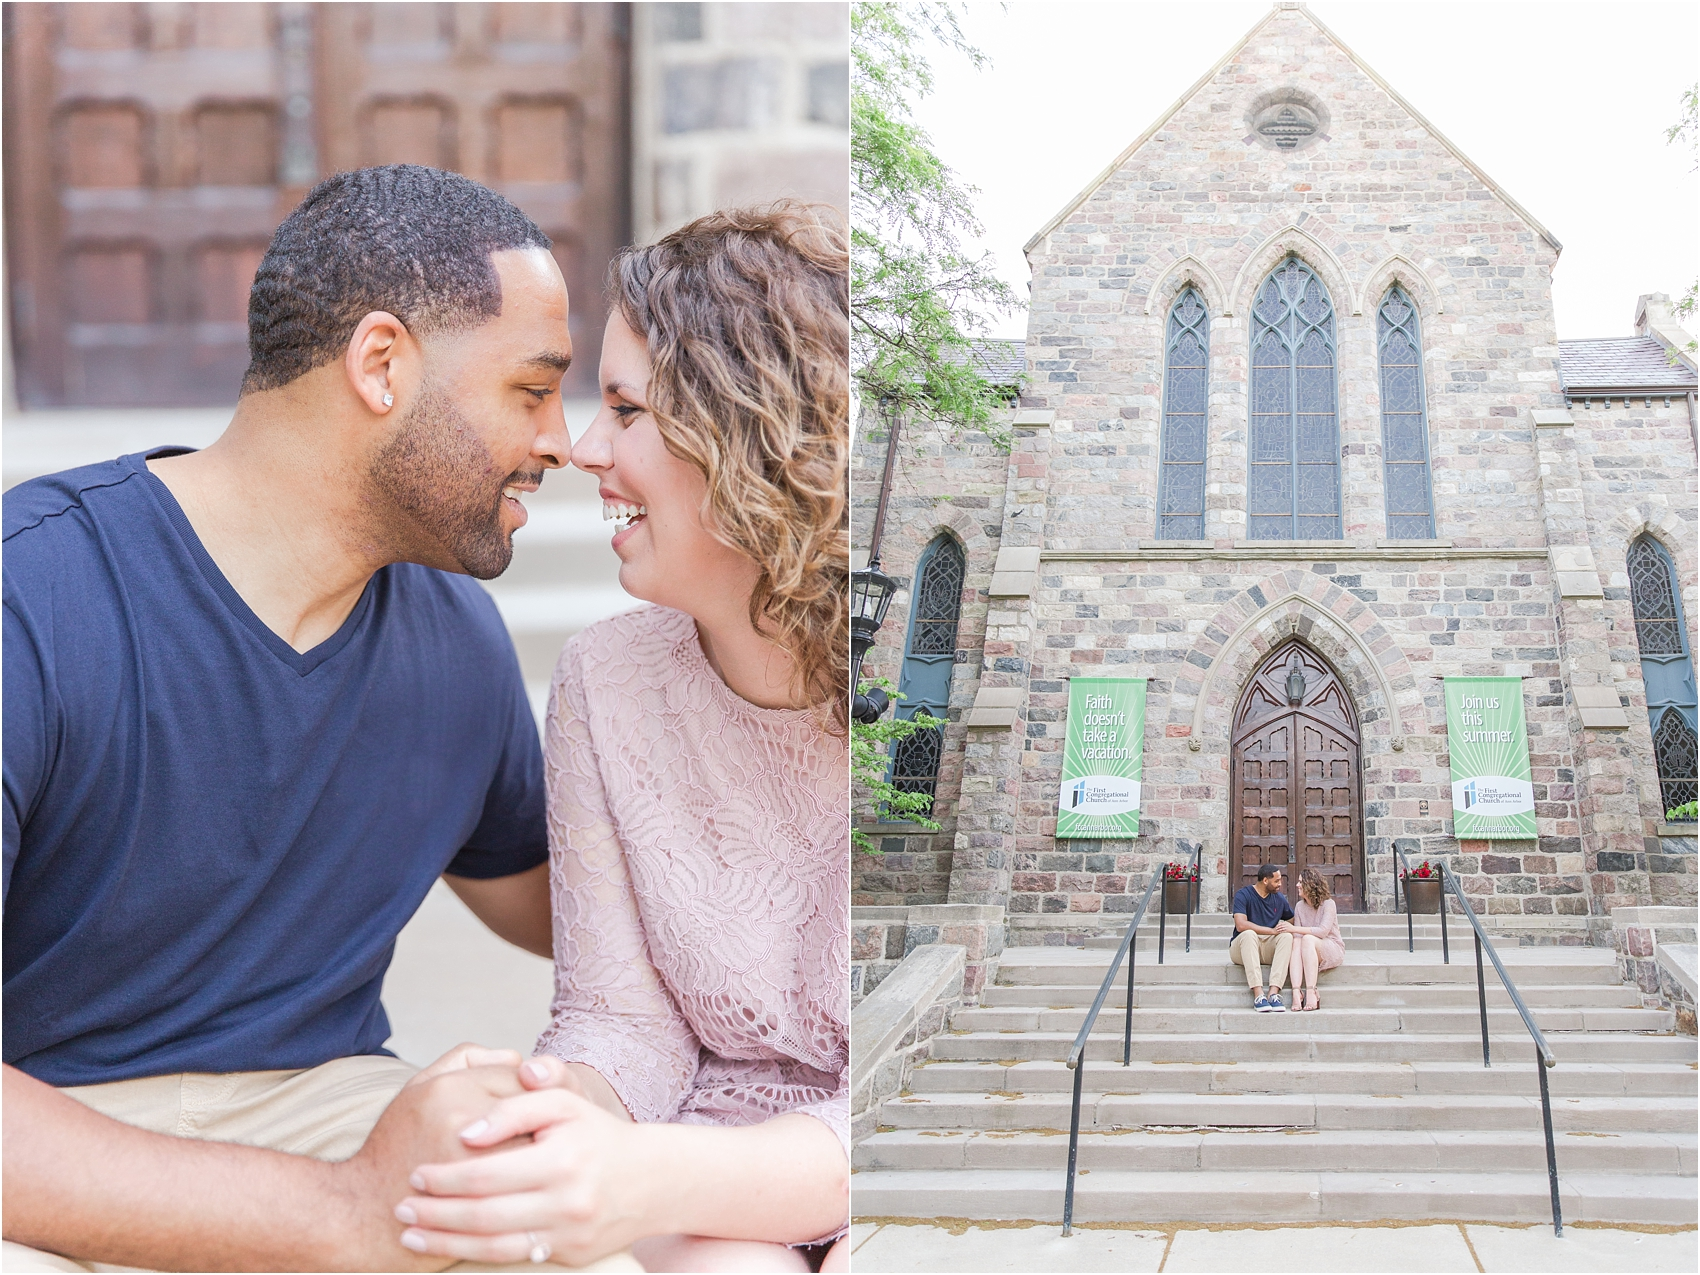 romantic-fun-university-of-michigan-engagement-photos-in-ann-arbor-mi-by-courtney-carolyn-photography_0004.jpg